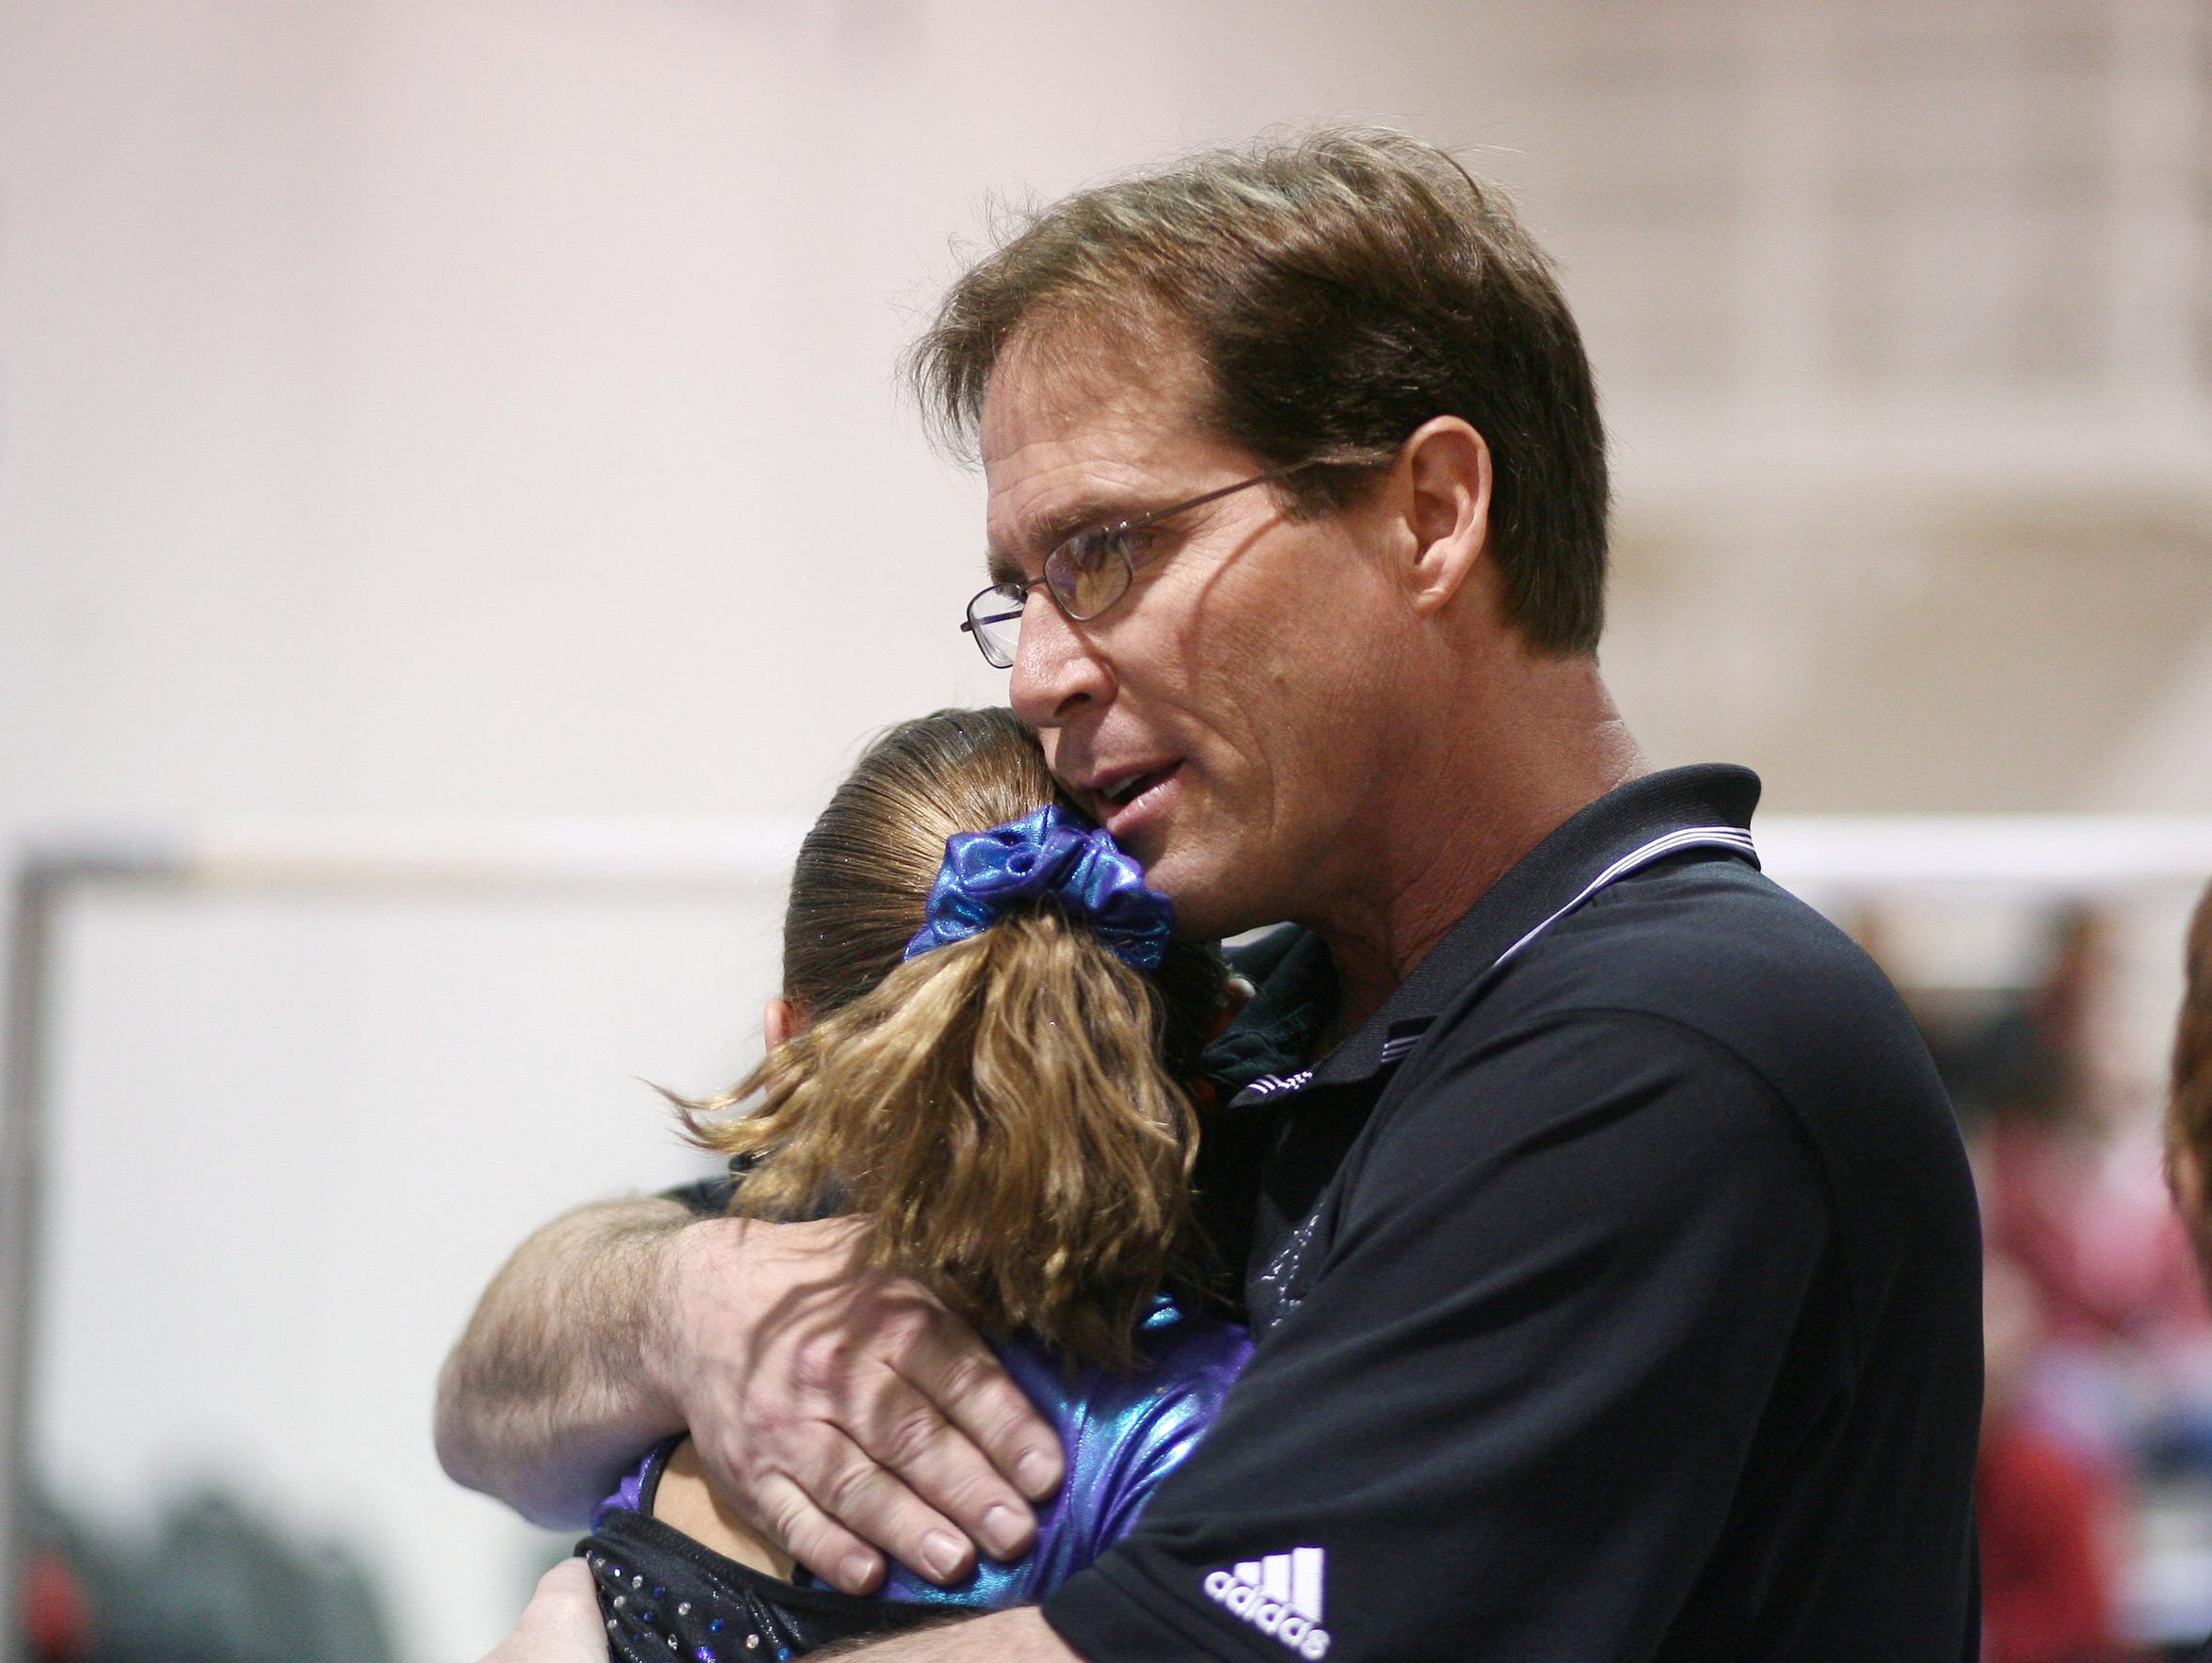 Jeffrey Bettman hugs a girl from the gym where he coached